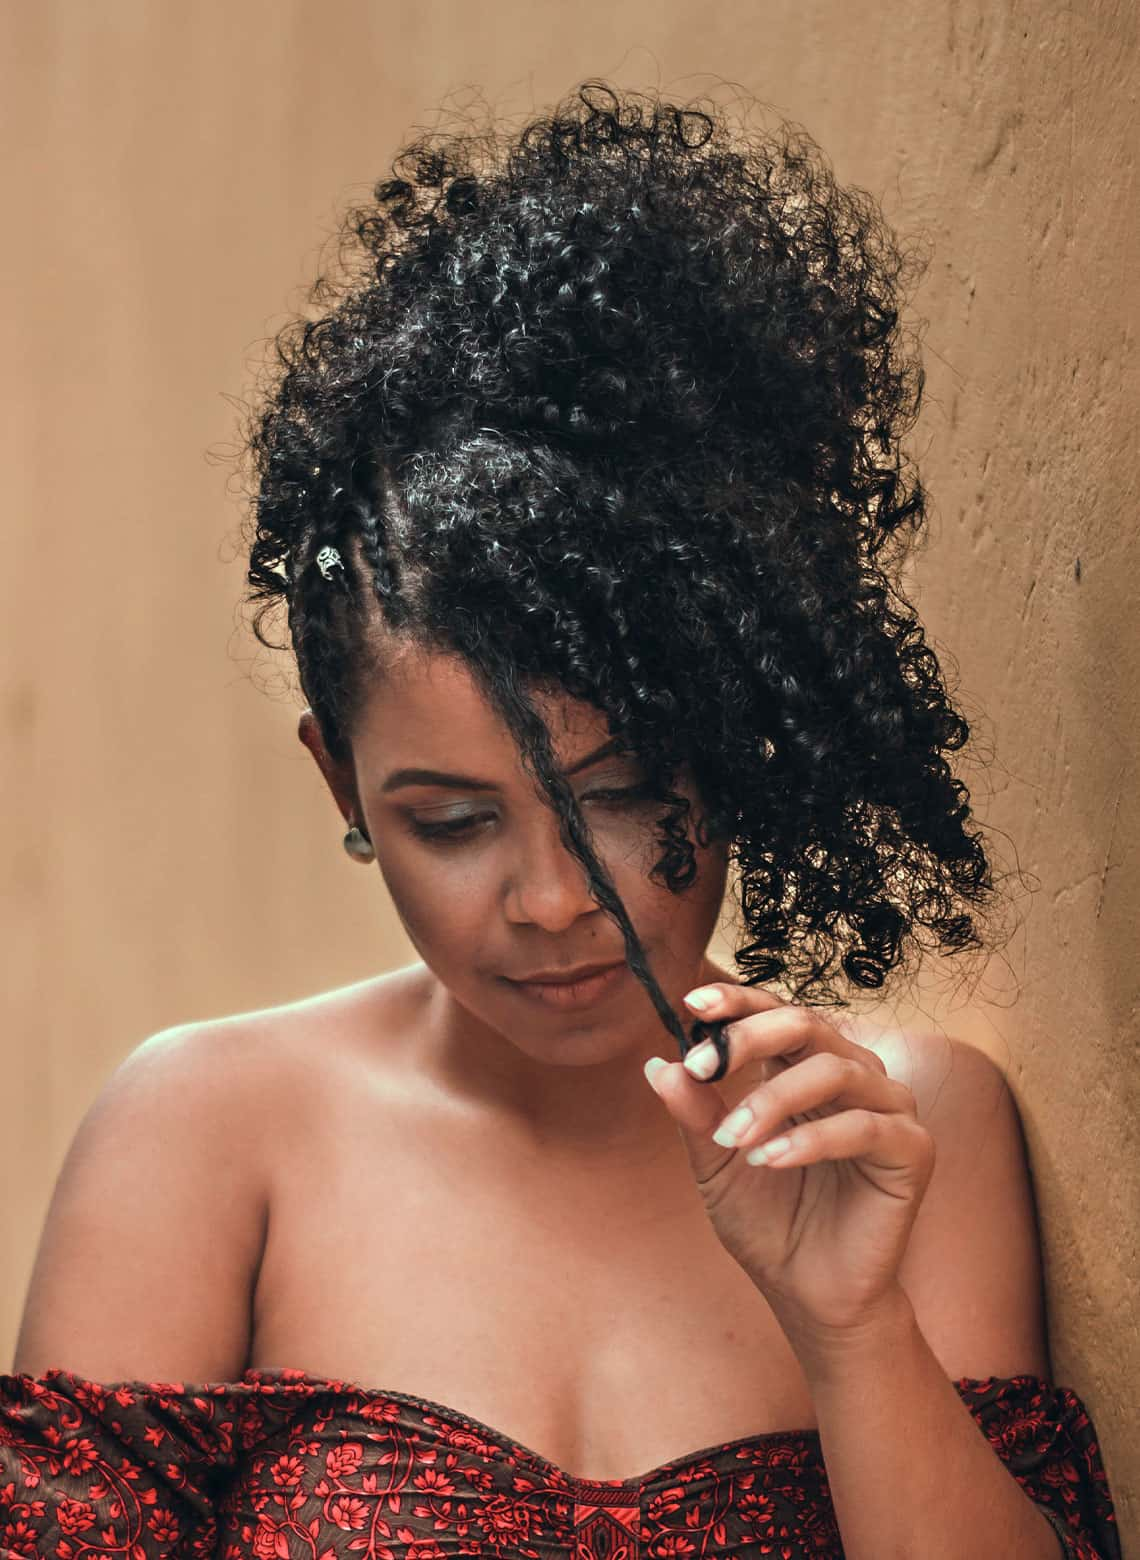 woman with braided curly pineapple